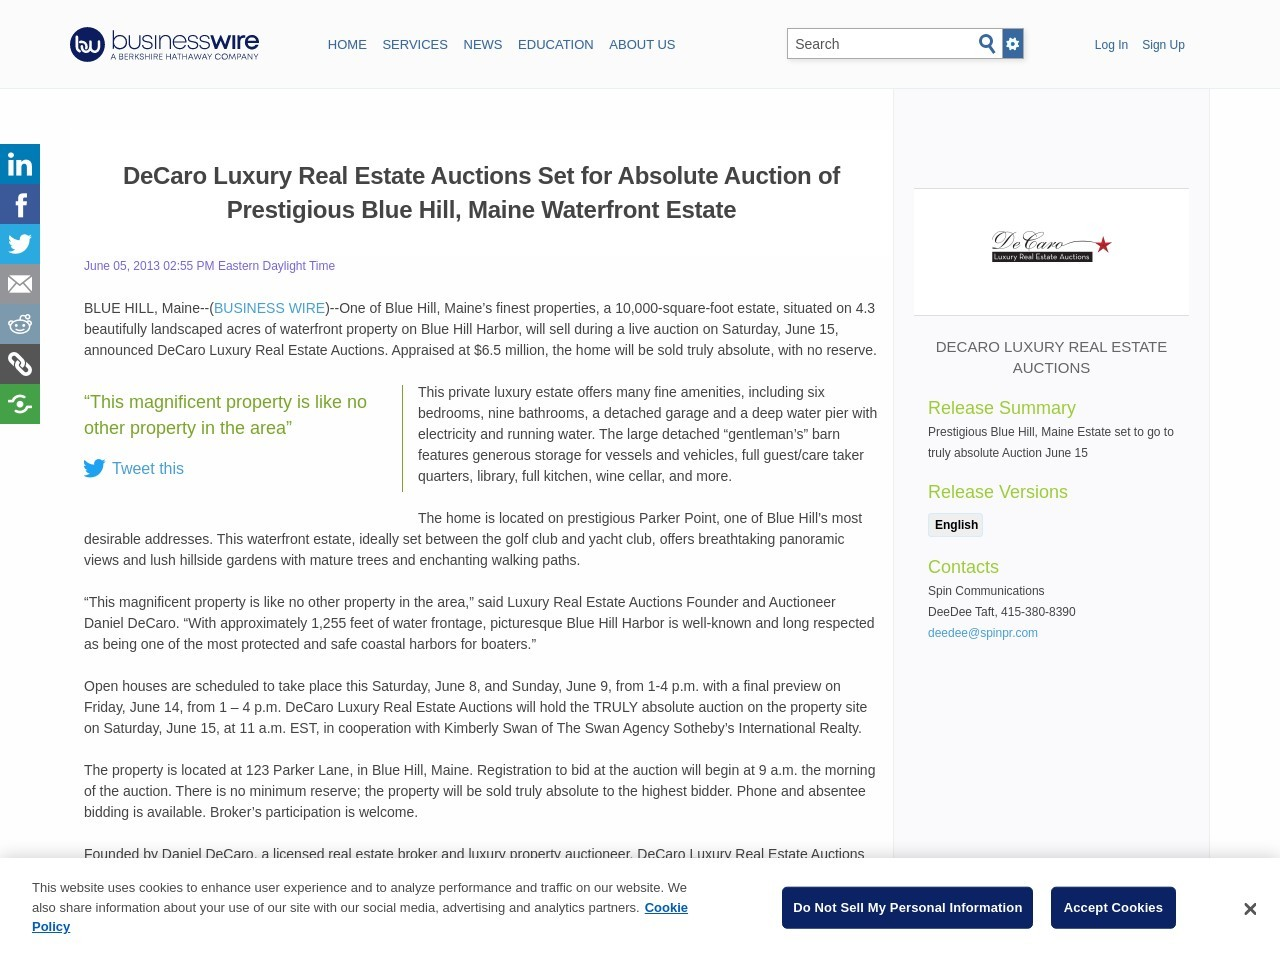 DeCaro Luxury Real Estate Auctions Set for Absolute Auction of Prestigious …